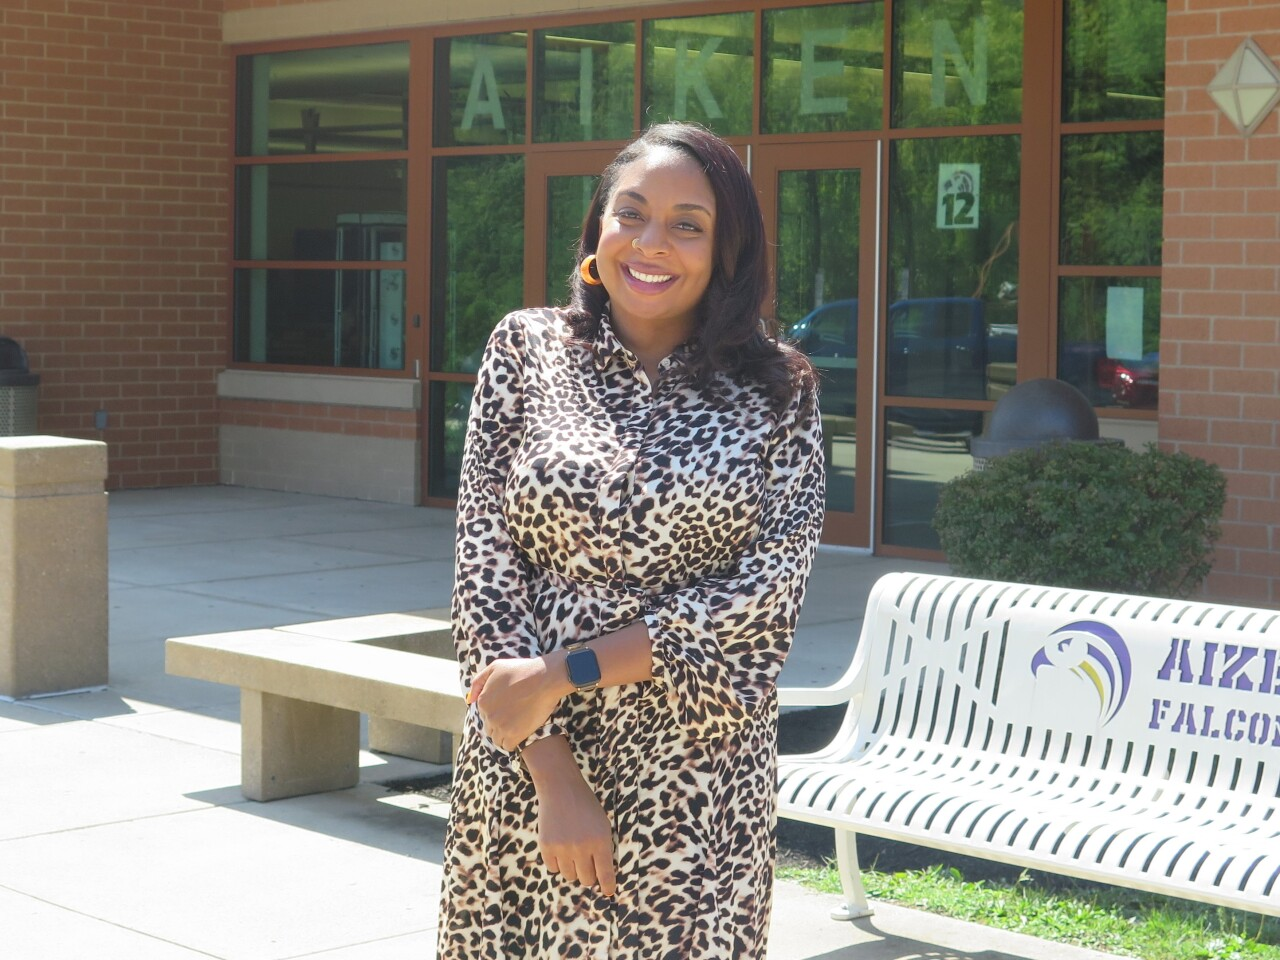 Rachel McMillian smiles in this picture taken outside Aiken High School. She has long dark hair and is wearing a dress with a spotted black and brown print.